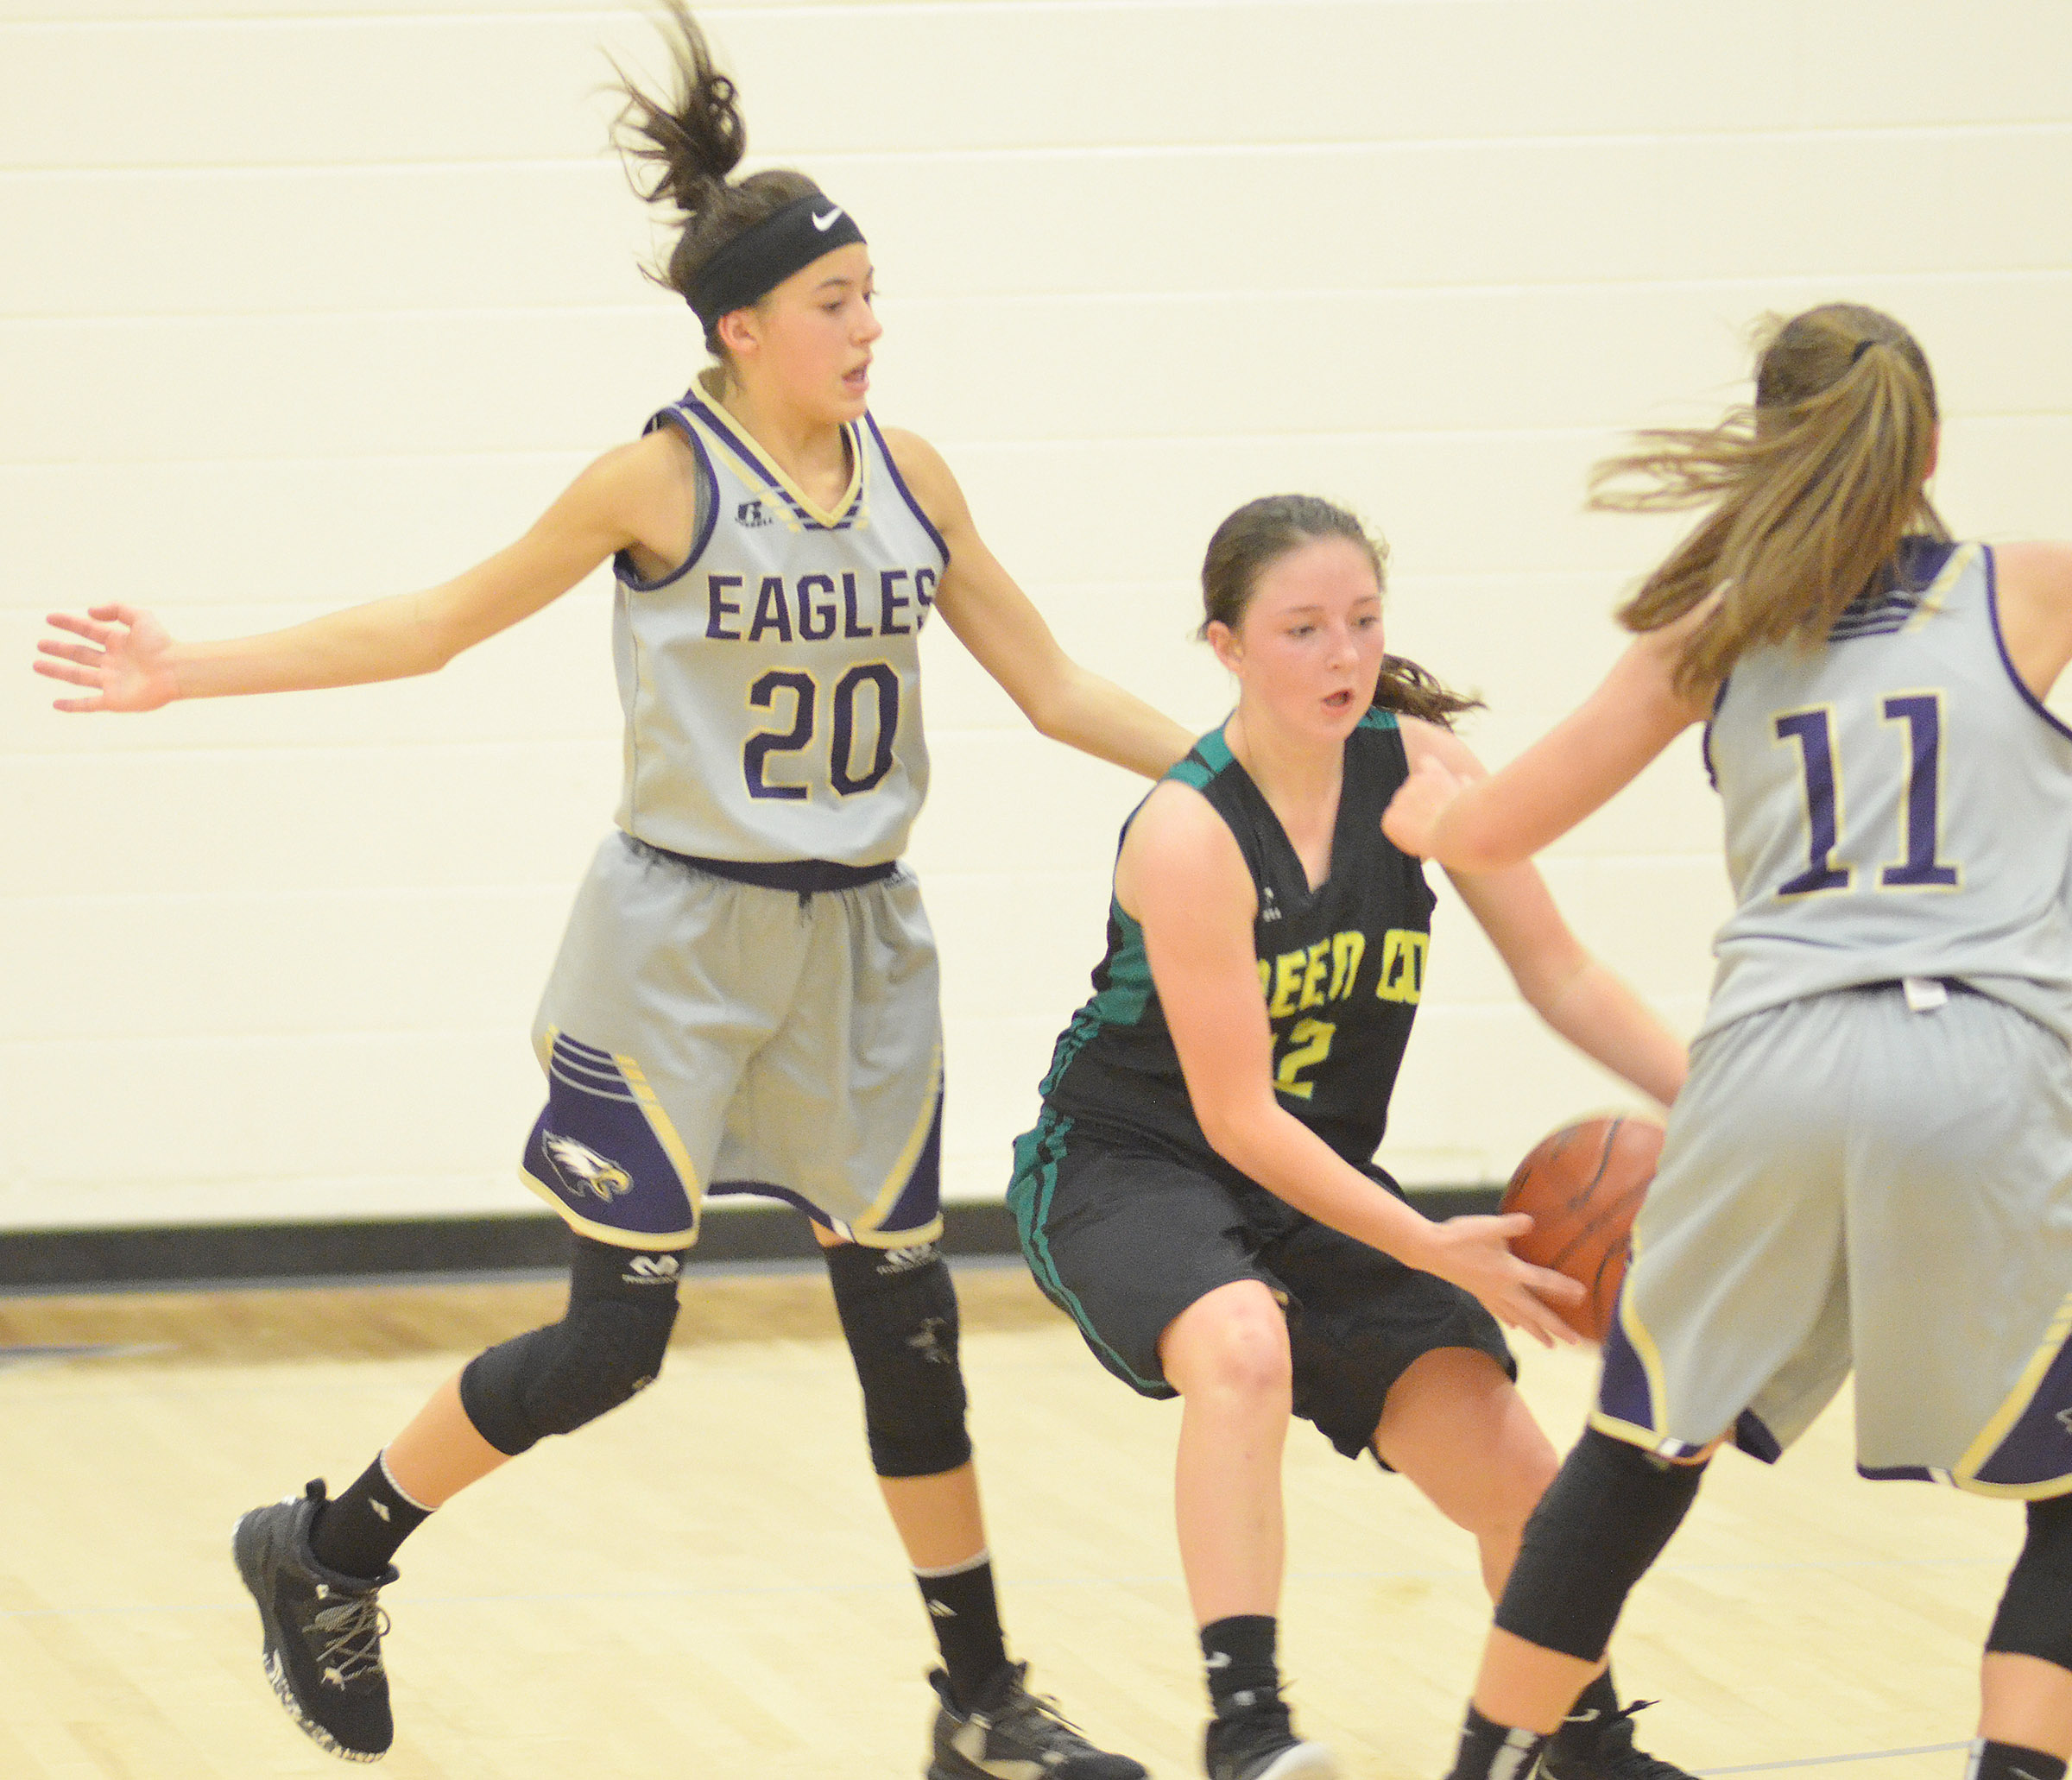 CMS eighth-graders Kaylyn Smith, at left, and Lainey Watson play defense.